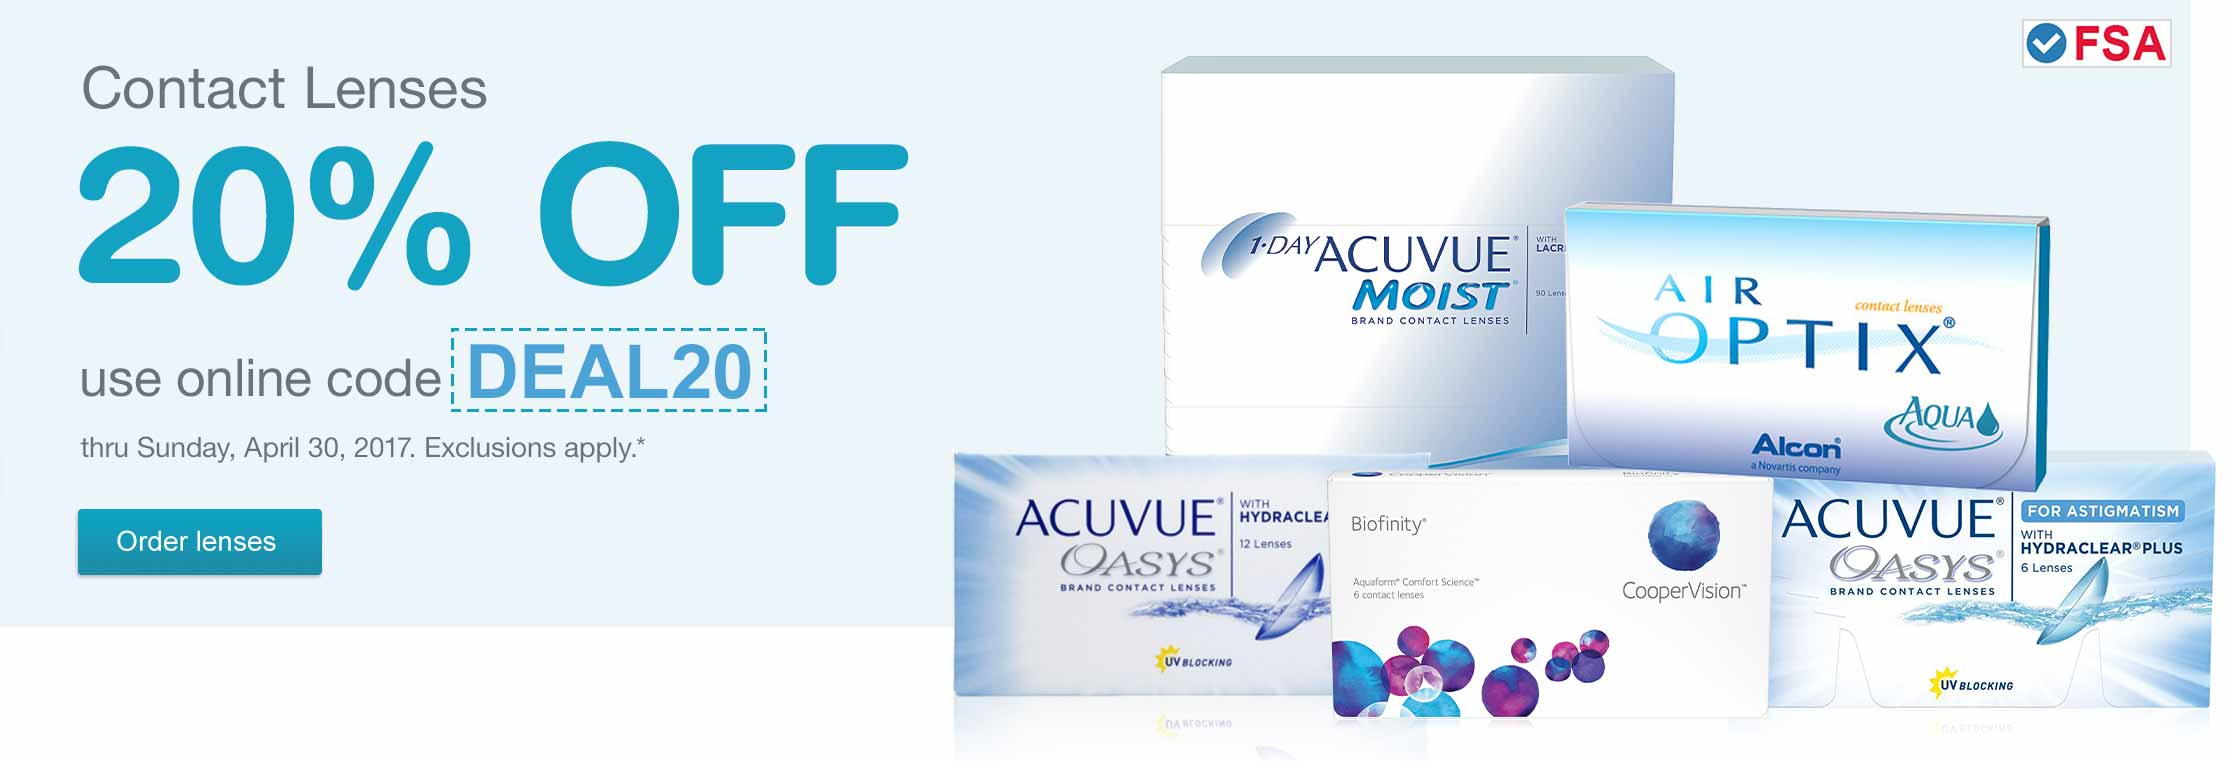 FSA approved. Contact Lenses 20% OFF use online code DEAL20 thru Sunday, April 30, 2017. Exclusions apply.* Order lenses.